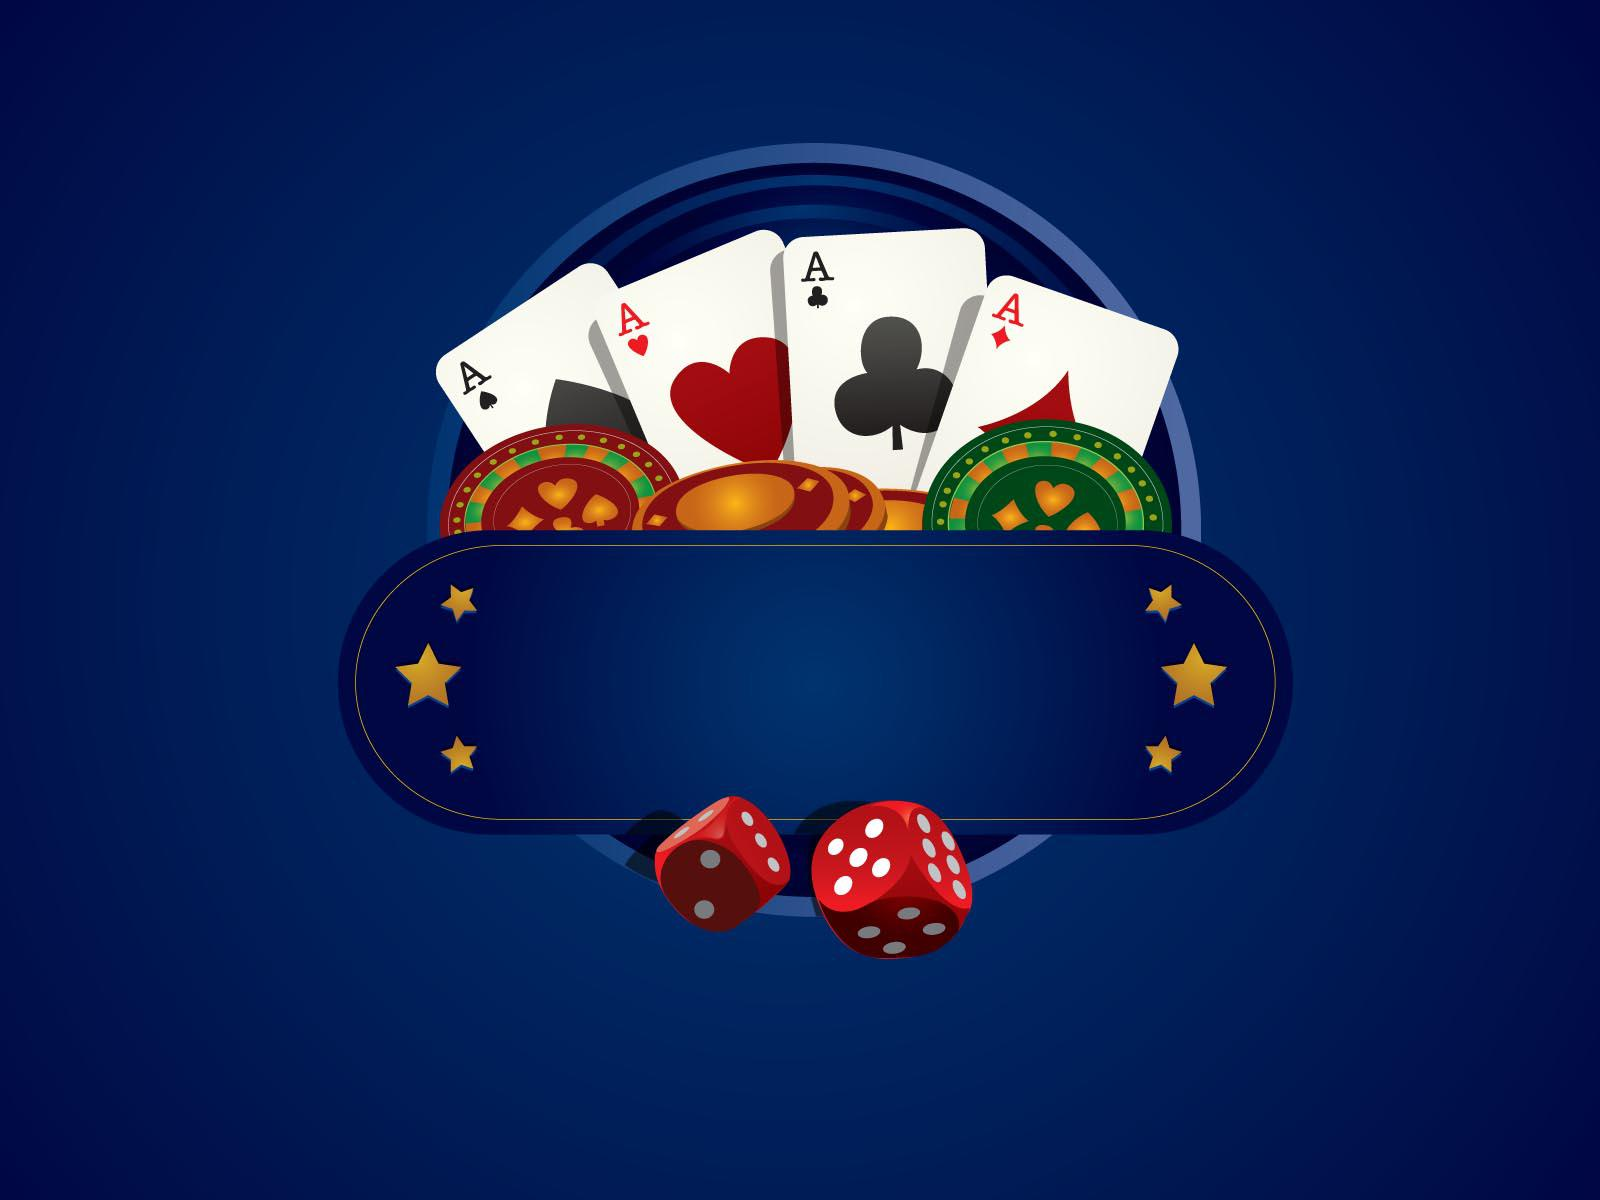 A Brand New Model For Casino Game